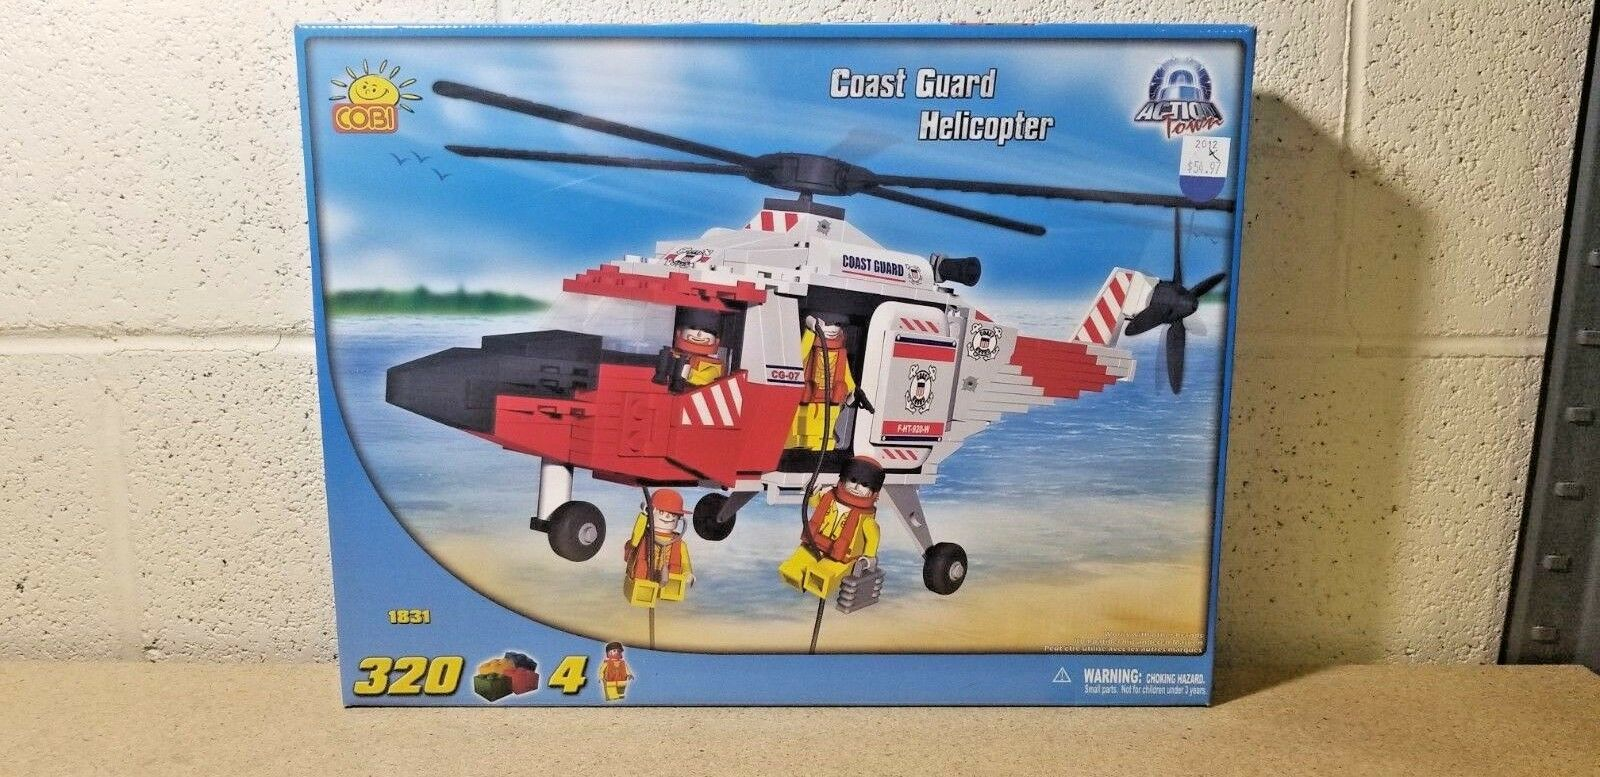 COBI     Coast Guard Helicopter Builder Set [1831] 2e2bcb